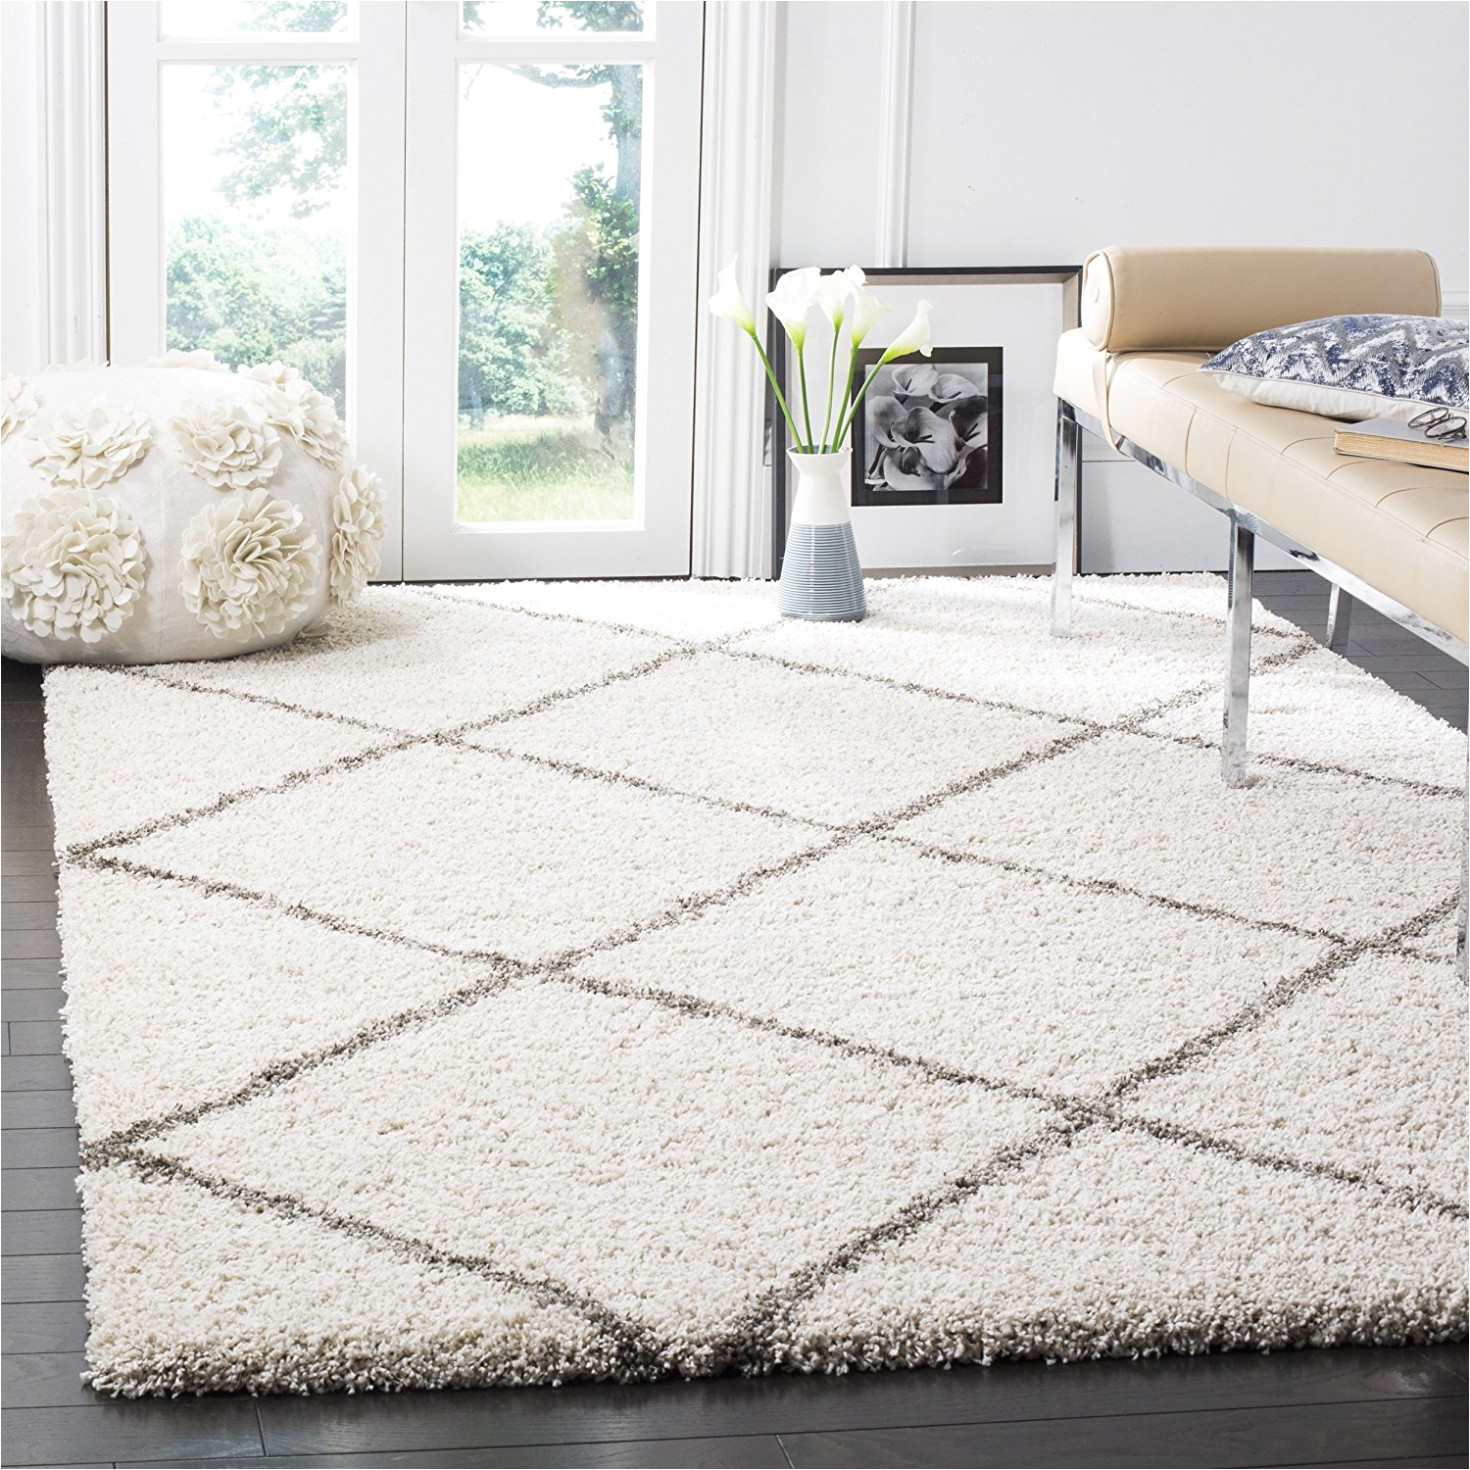 area rugs under 50 amazing on bedroom in carpet rug 5x8 cheap near me 5x7 2